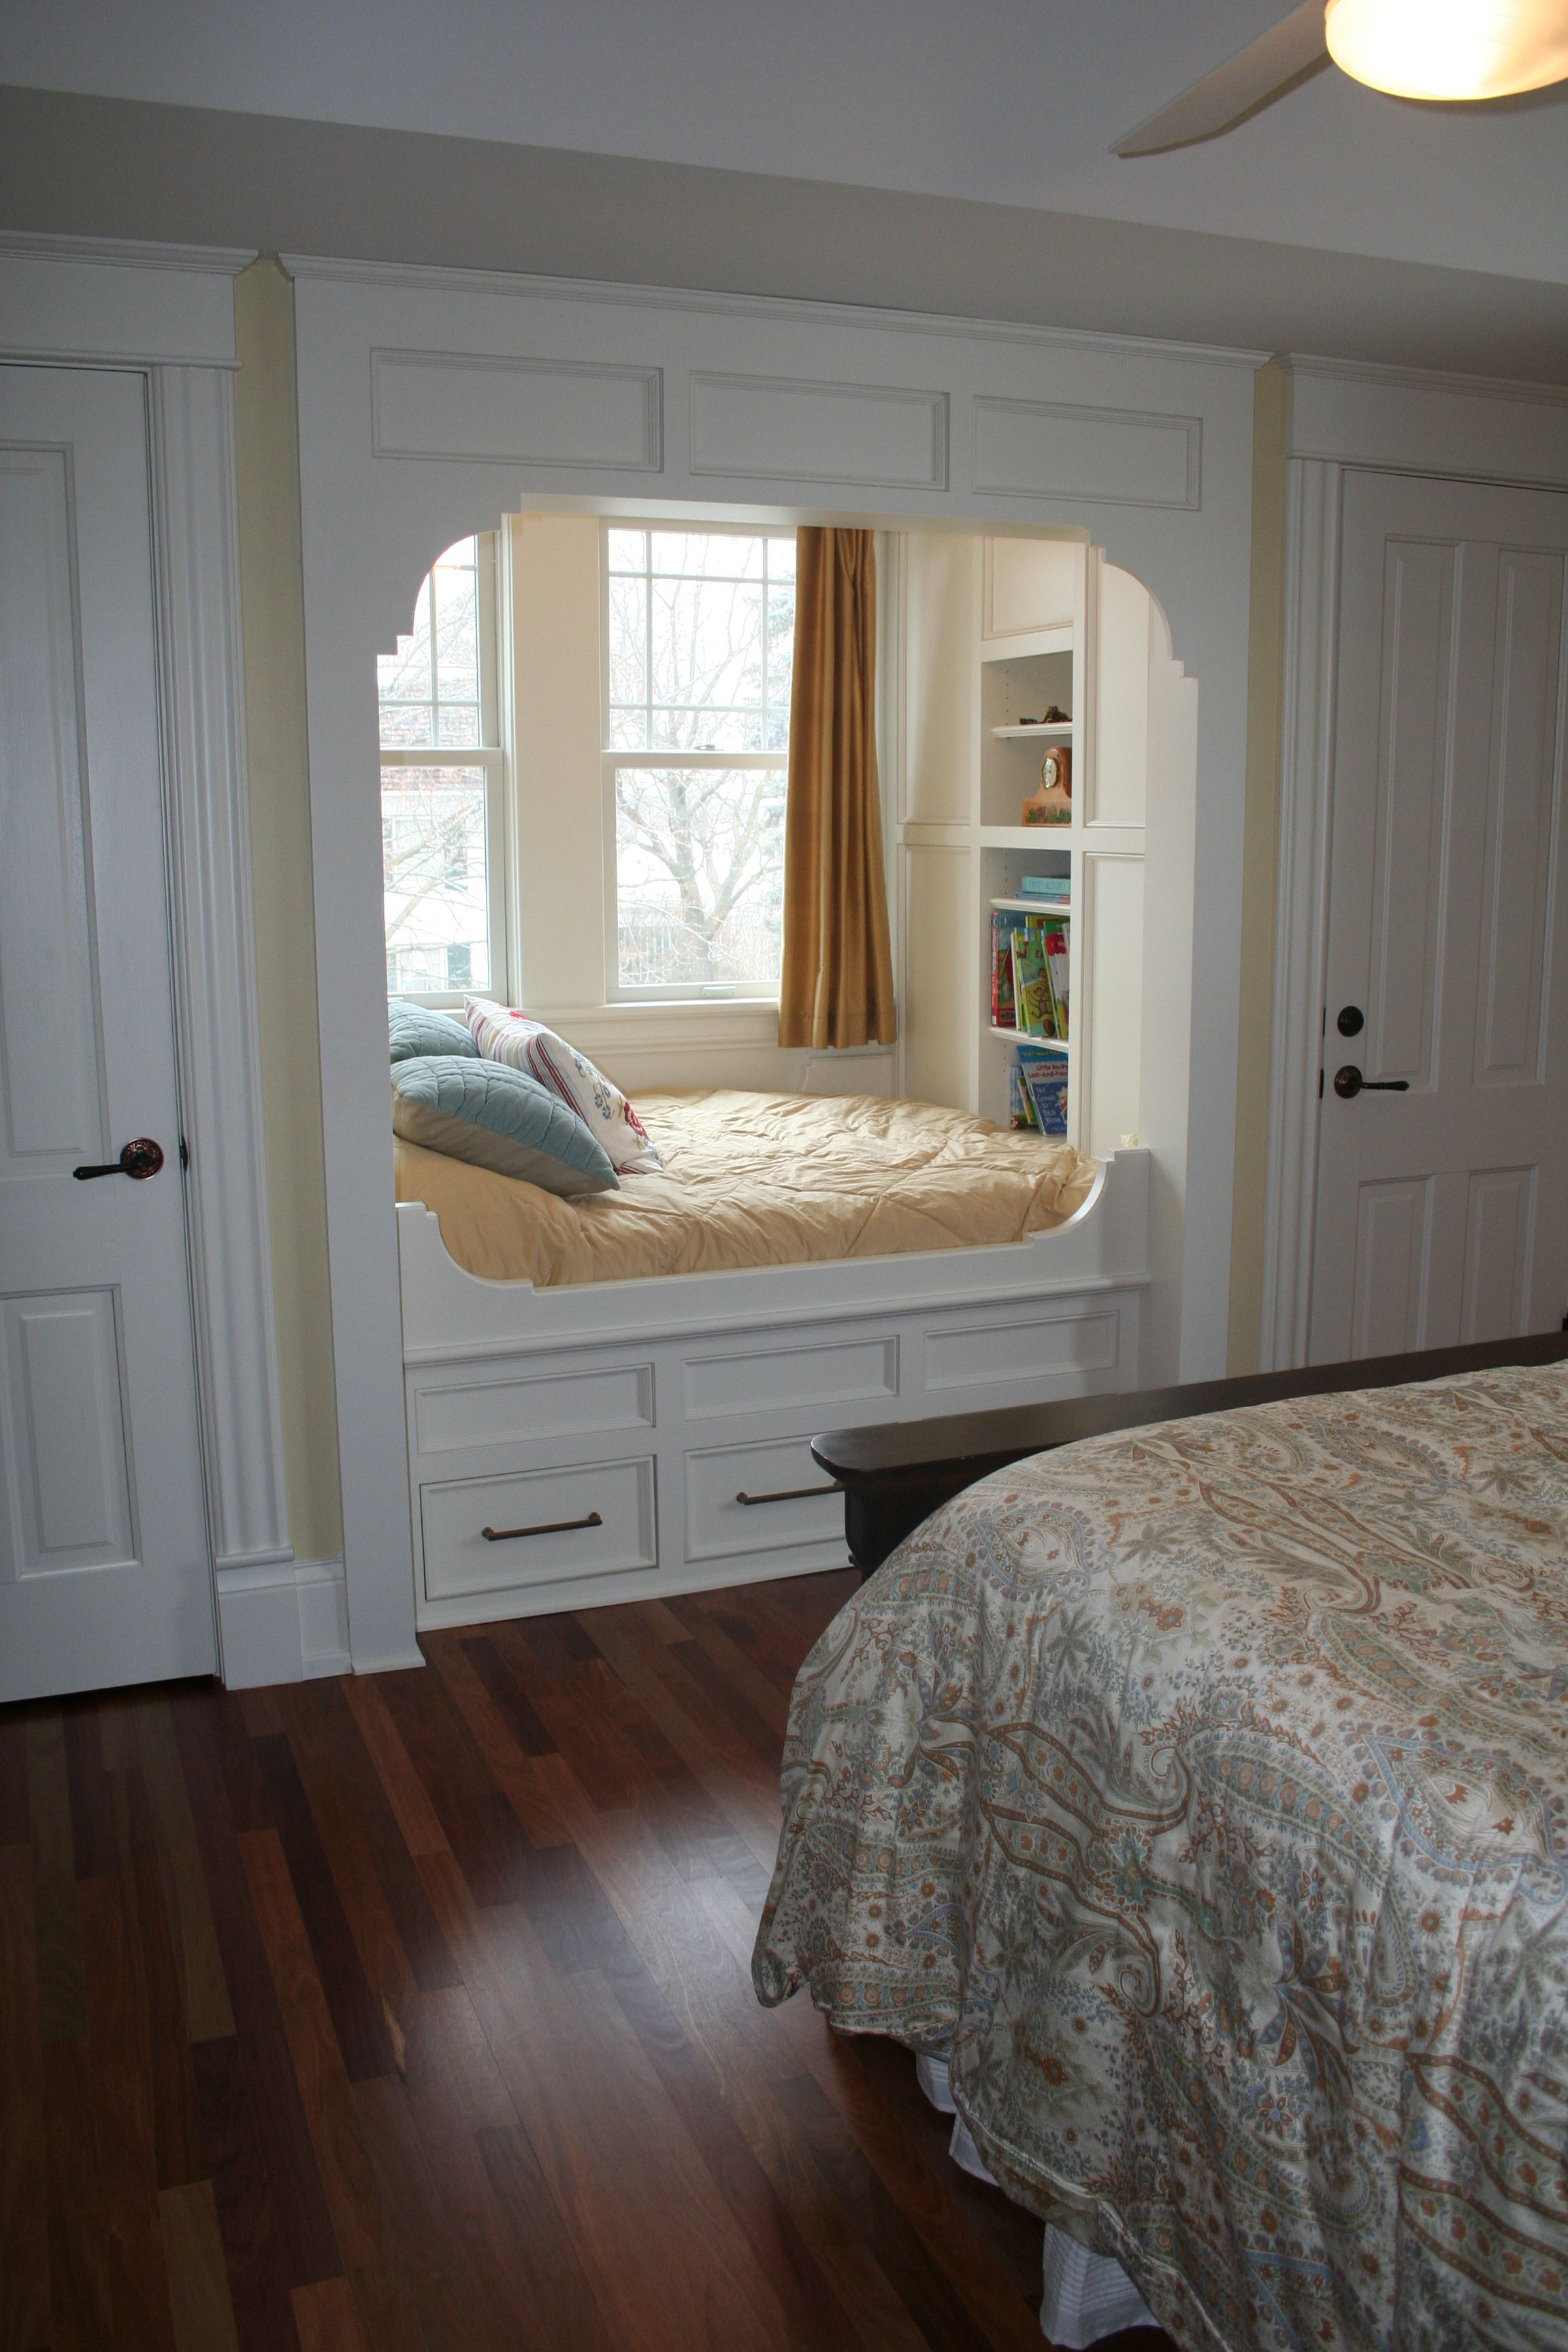 Window seat with bed  custom builtin bed in a bedroom alcove for reading my lifeus